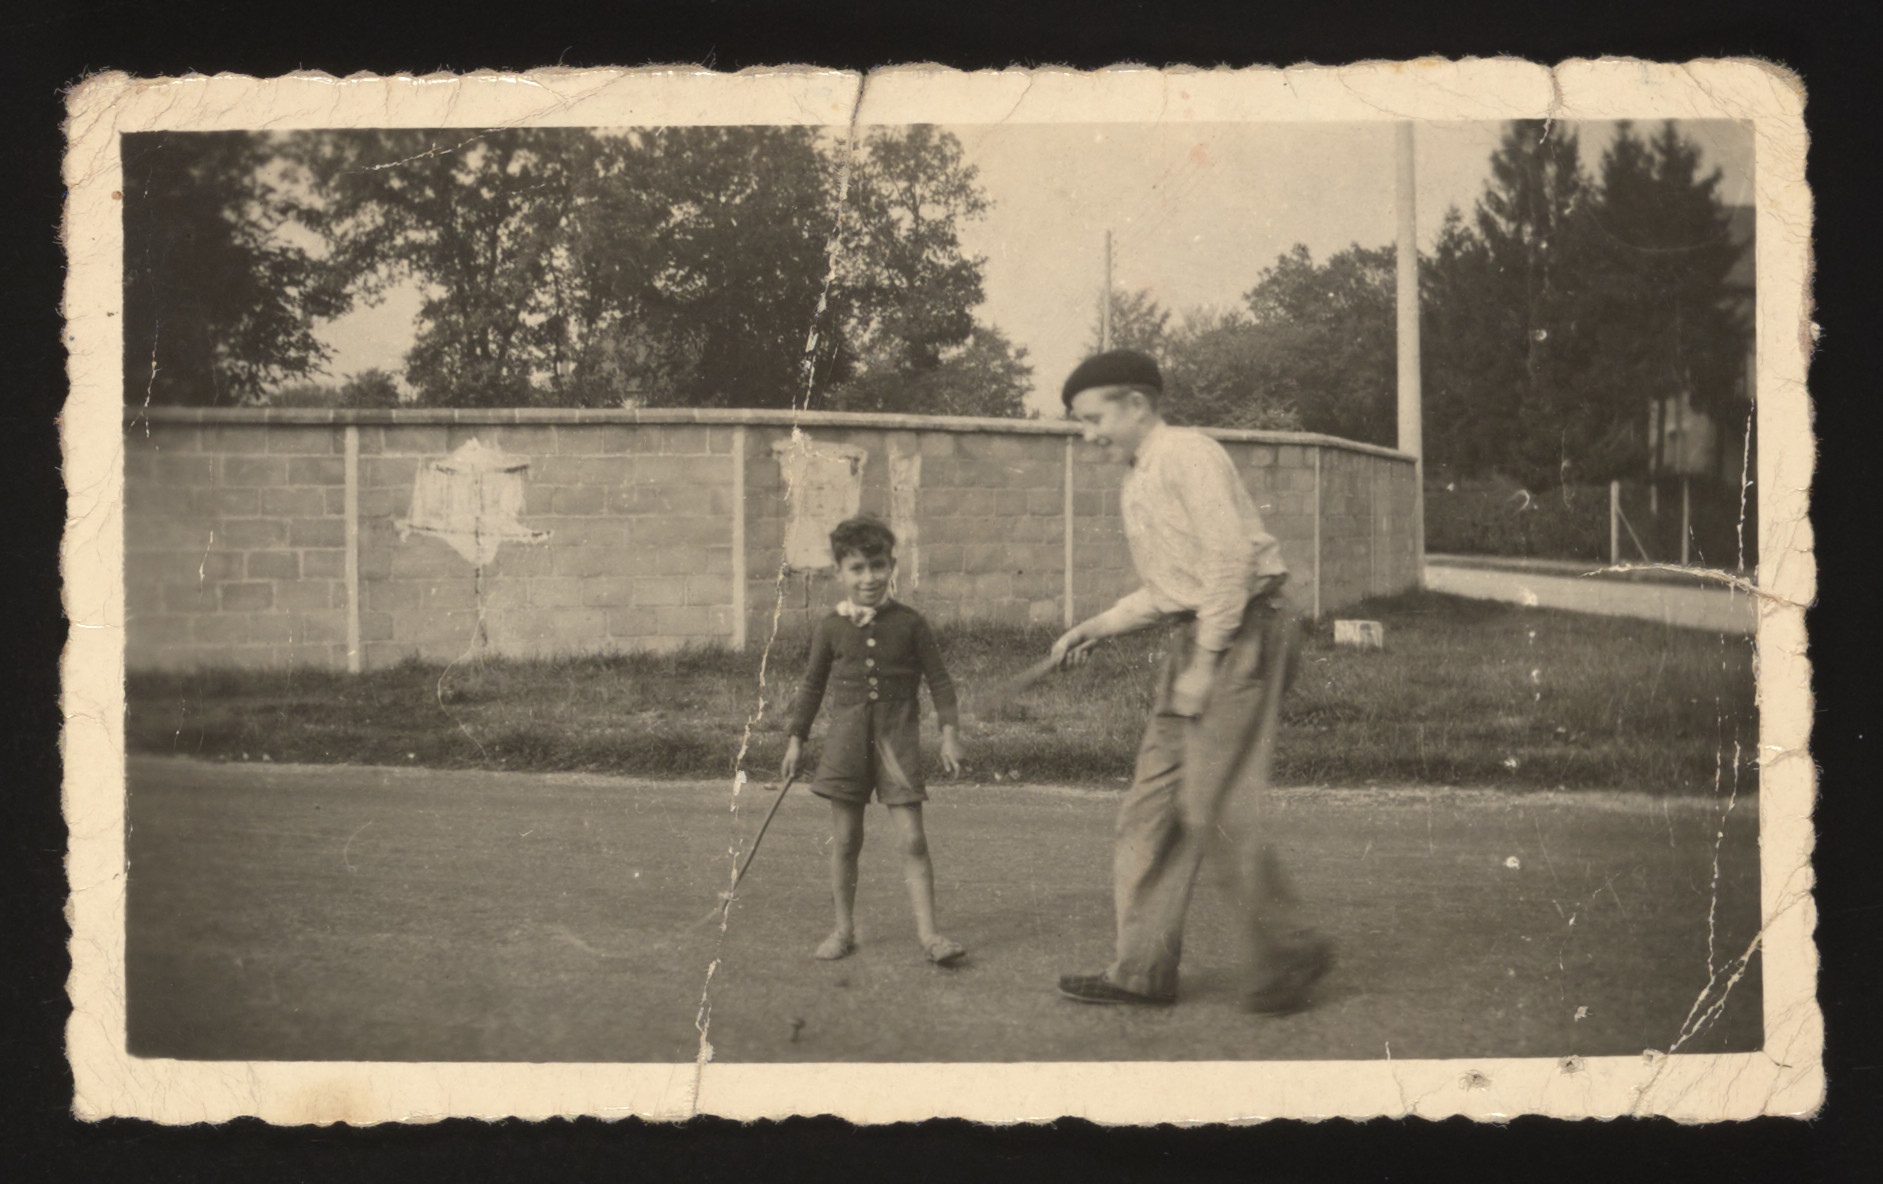 Simon Jeruchim plays with his younger brother Michel in the field outside a children's home in Cailly-sur-Eure, France.